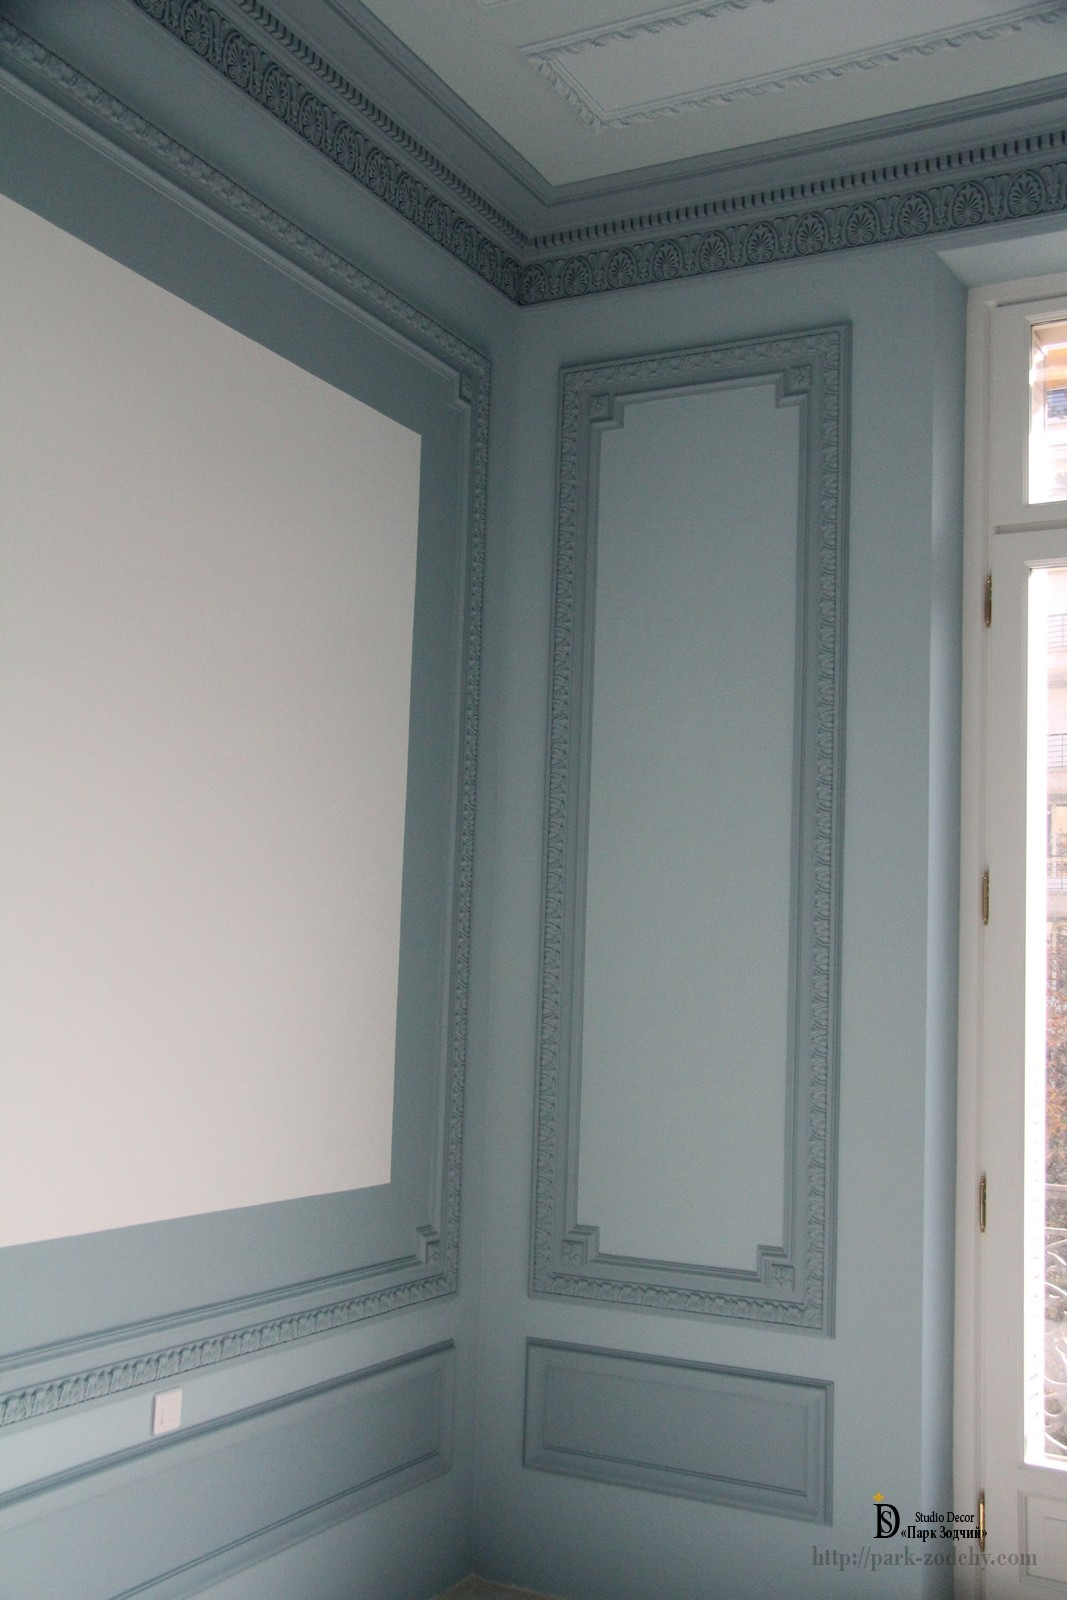 plaster moldings on the walls